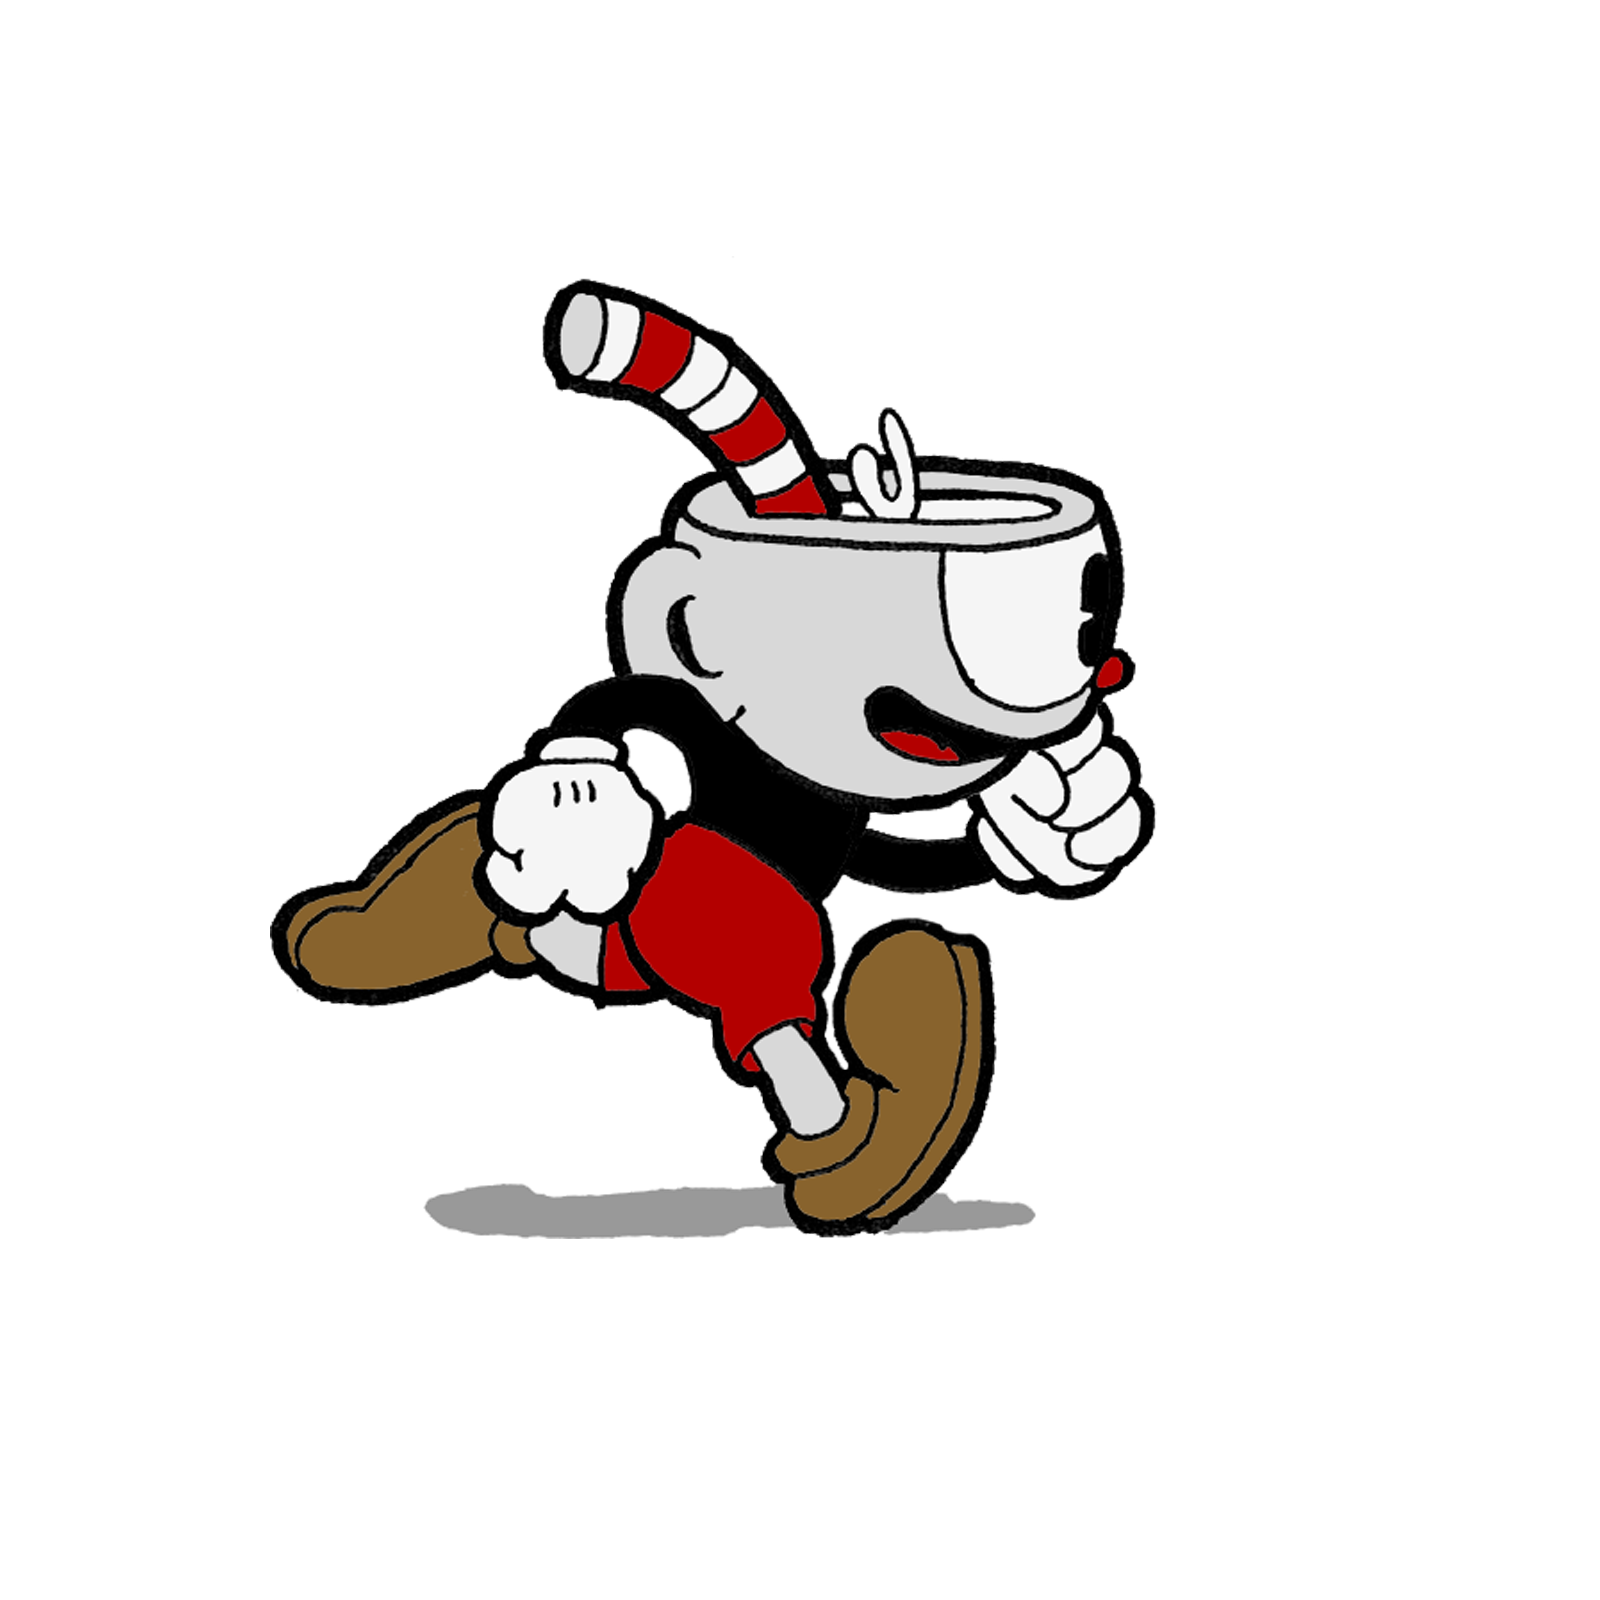 Transparent sprites cuphead. Edukayfun wikia fandom powered